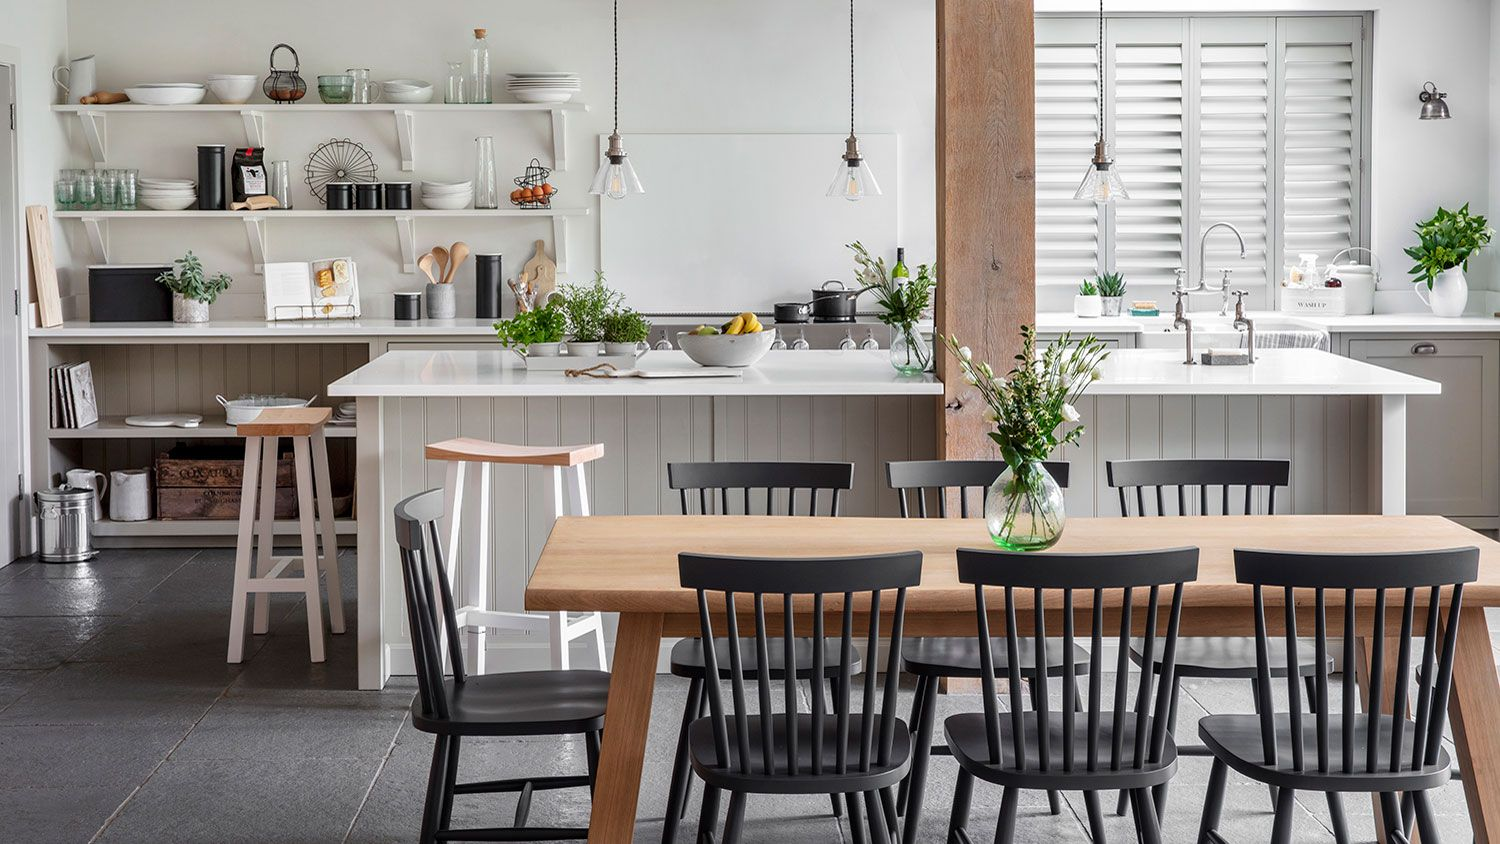 County View Contracting | Open plan kitchen ideas: 16 room ...